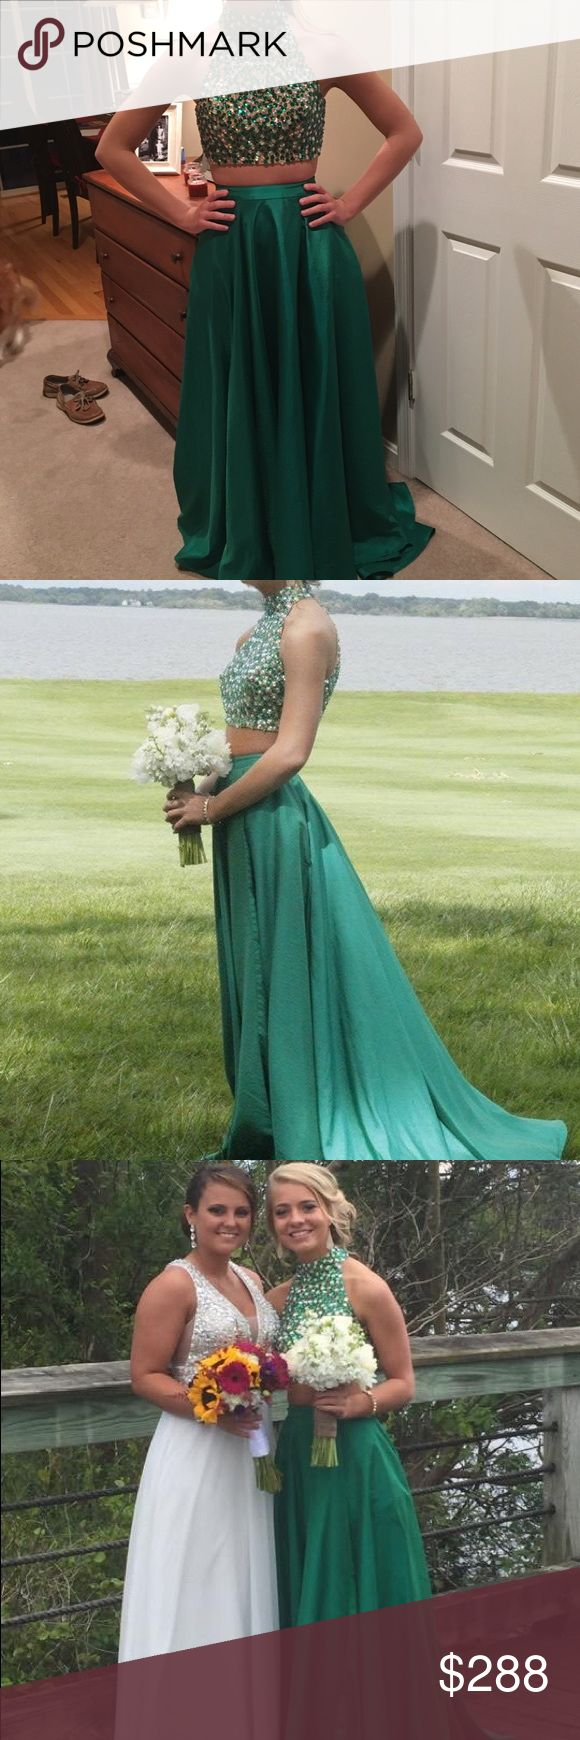 Sherri Hill 2 Piece Prom Dress USED* Emerald green Sherri hill authentic prom dress. High neck, key hole back, two piece dress. Was originally a size two but skirt was taken in to be a 0. Can be let back out if needed. Hemmed at the bottom for 5'4 without heels. Height may also vary to where you place the skirt on your stomach though. Beautiful dress, many compliments. Sherri Hill Dresses Prom